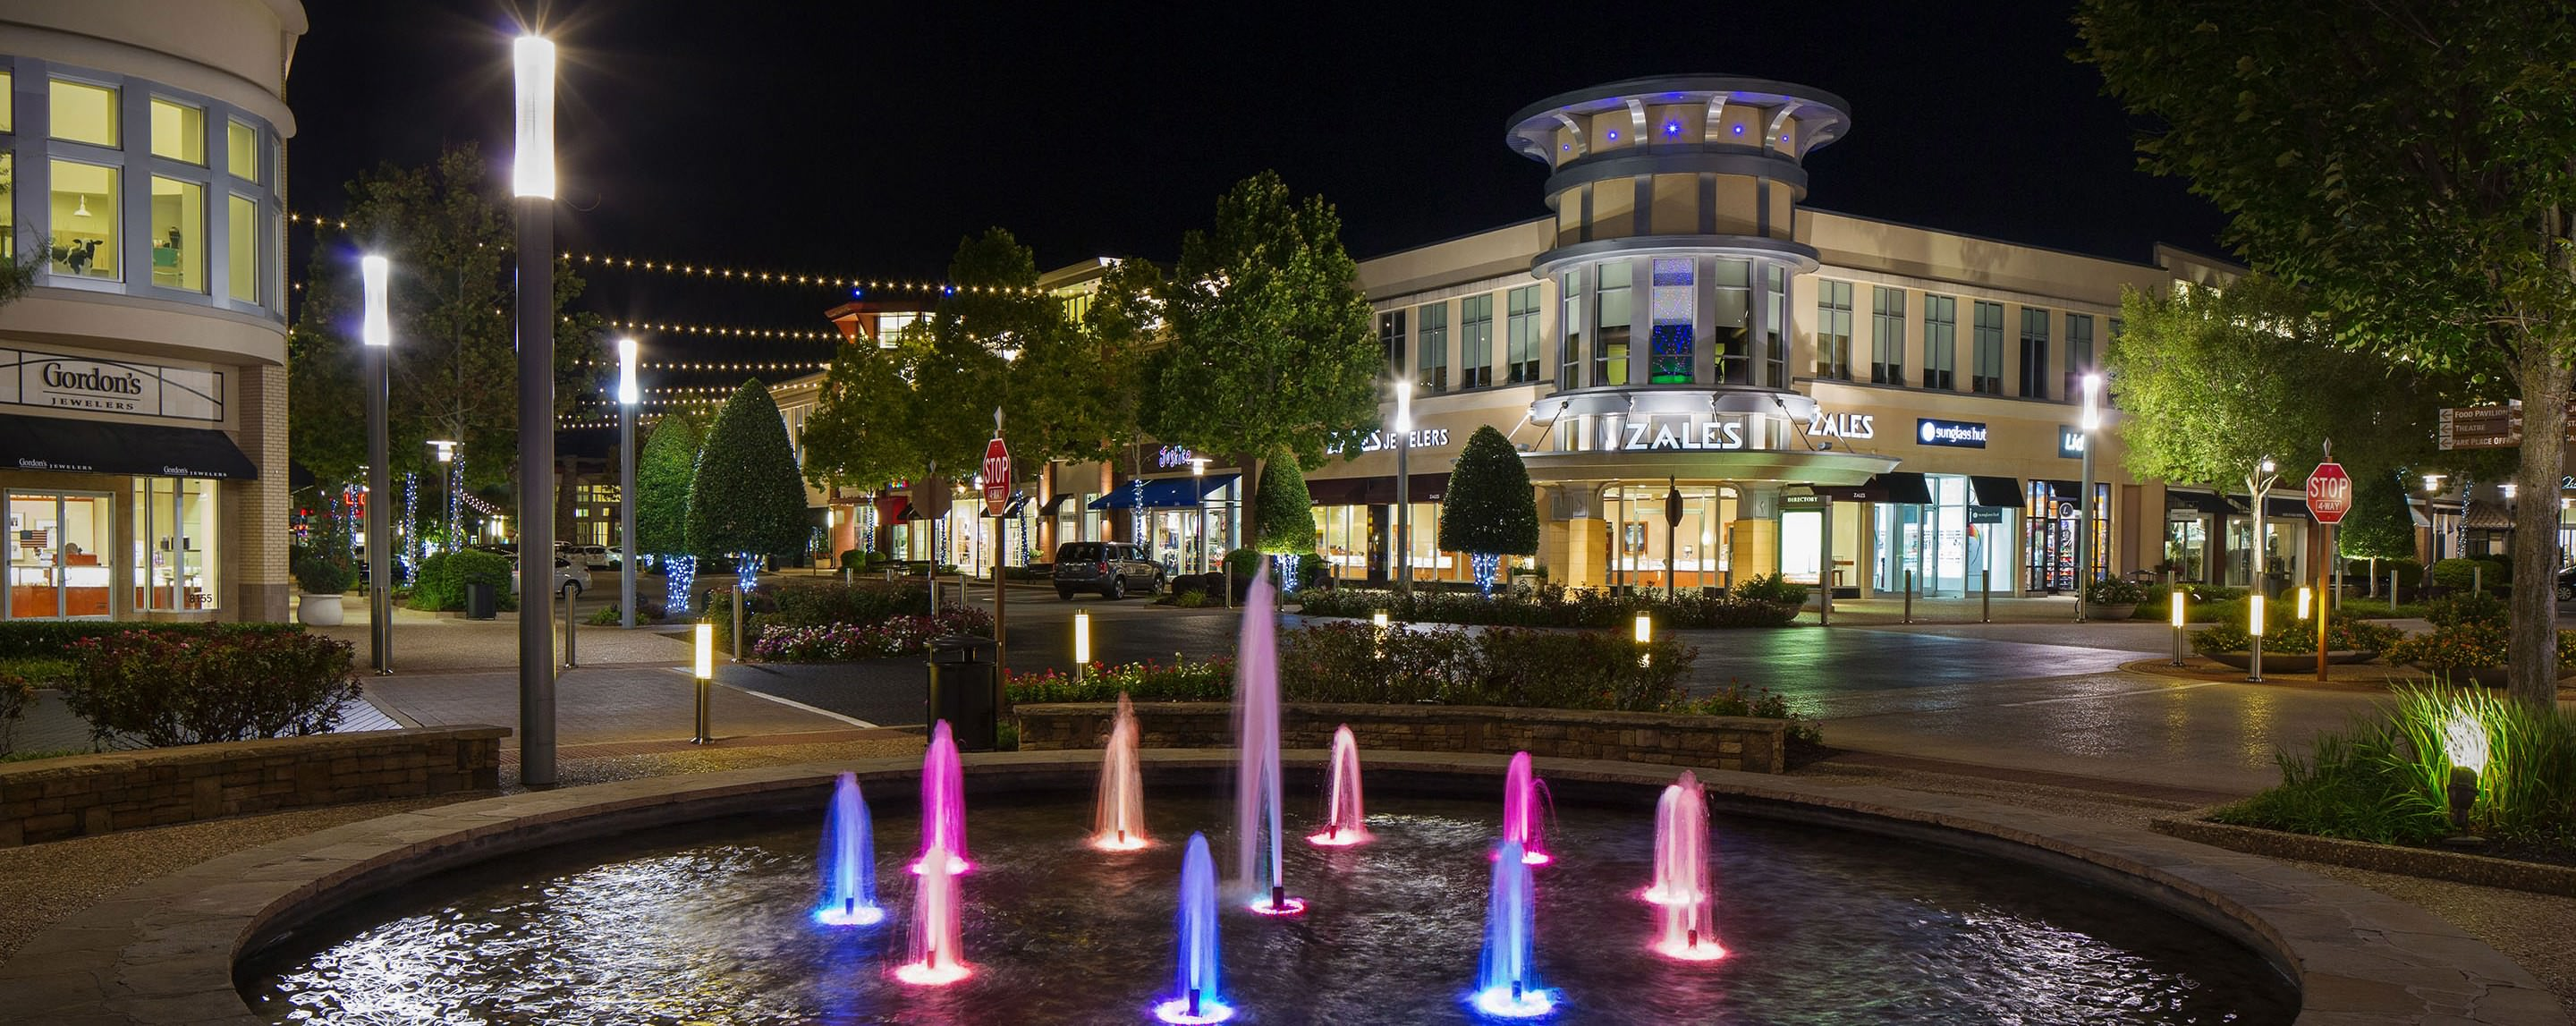 At night, the exterior of Pinnacle Hills Promenade is brightly lit by decorative lighting and storefronts.